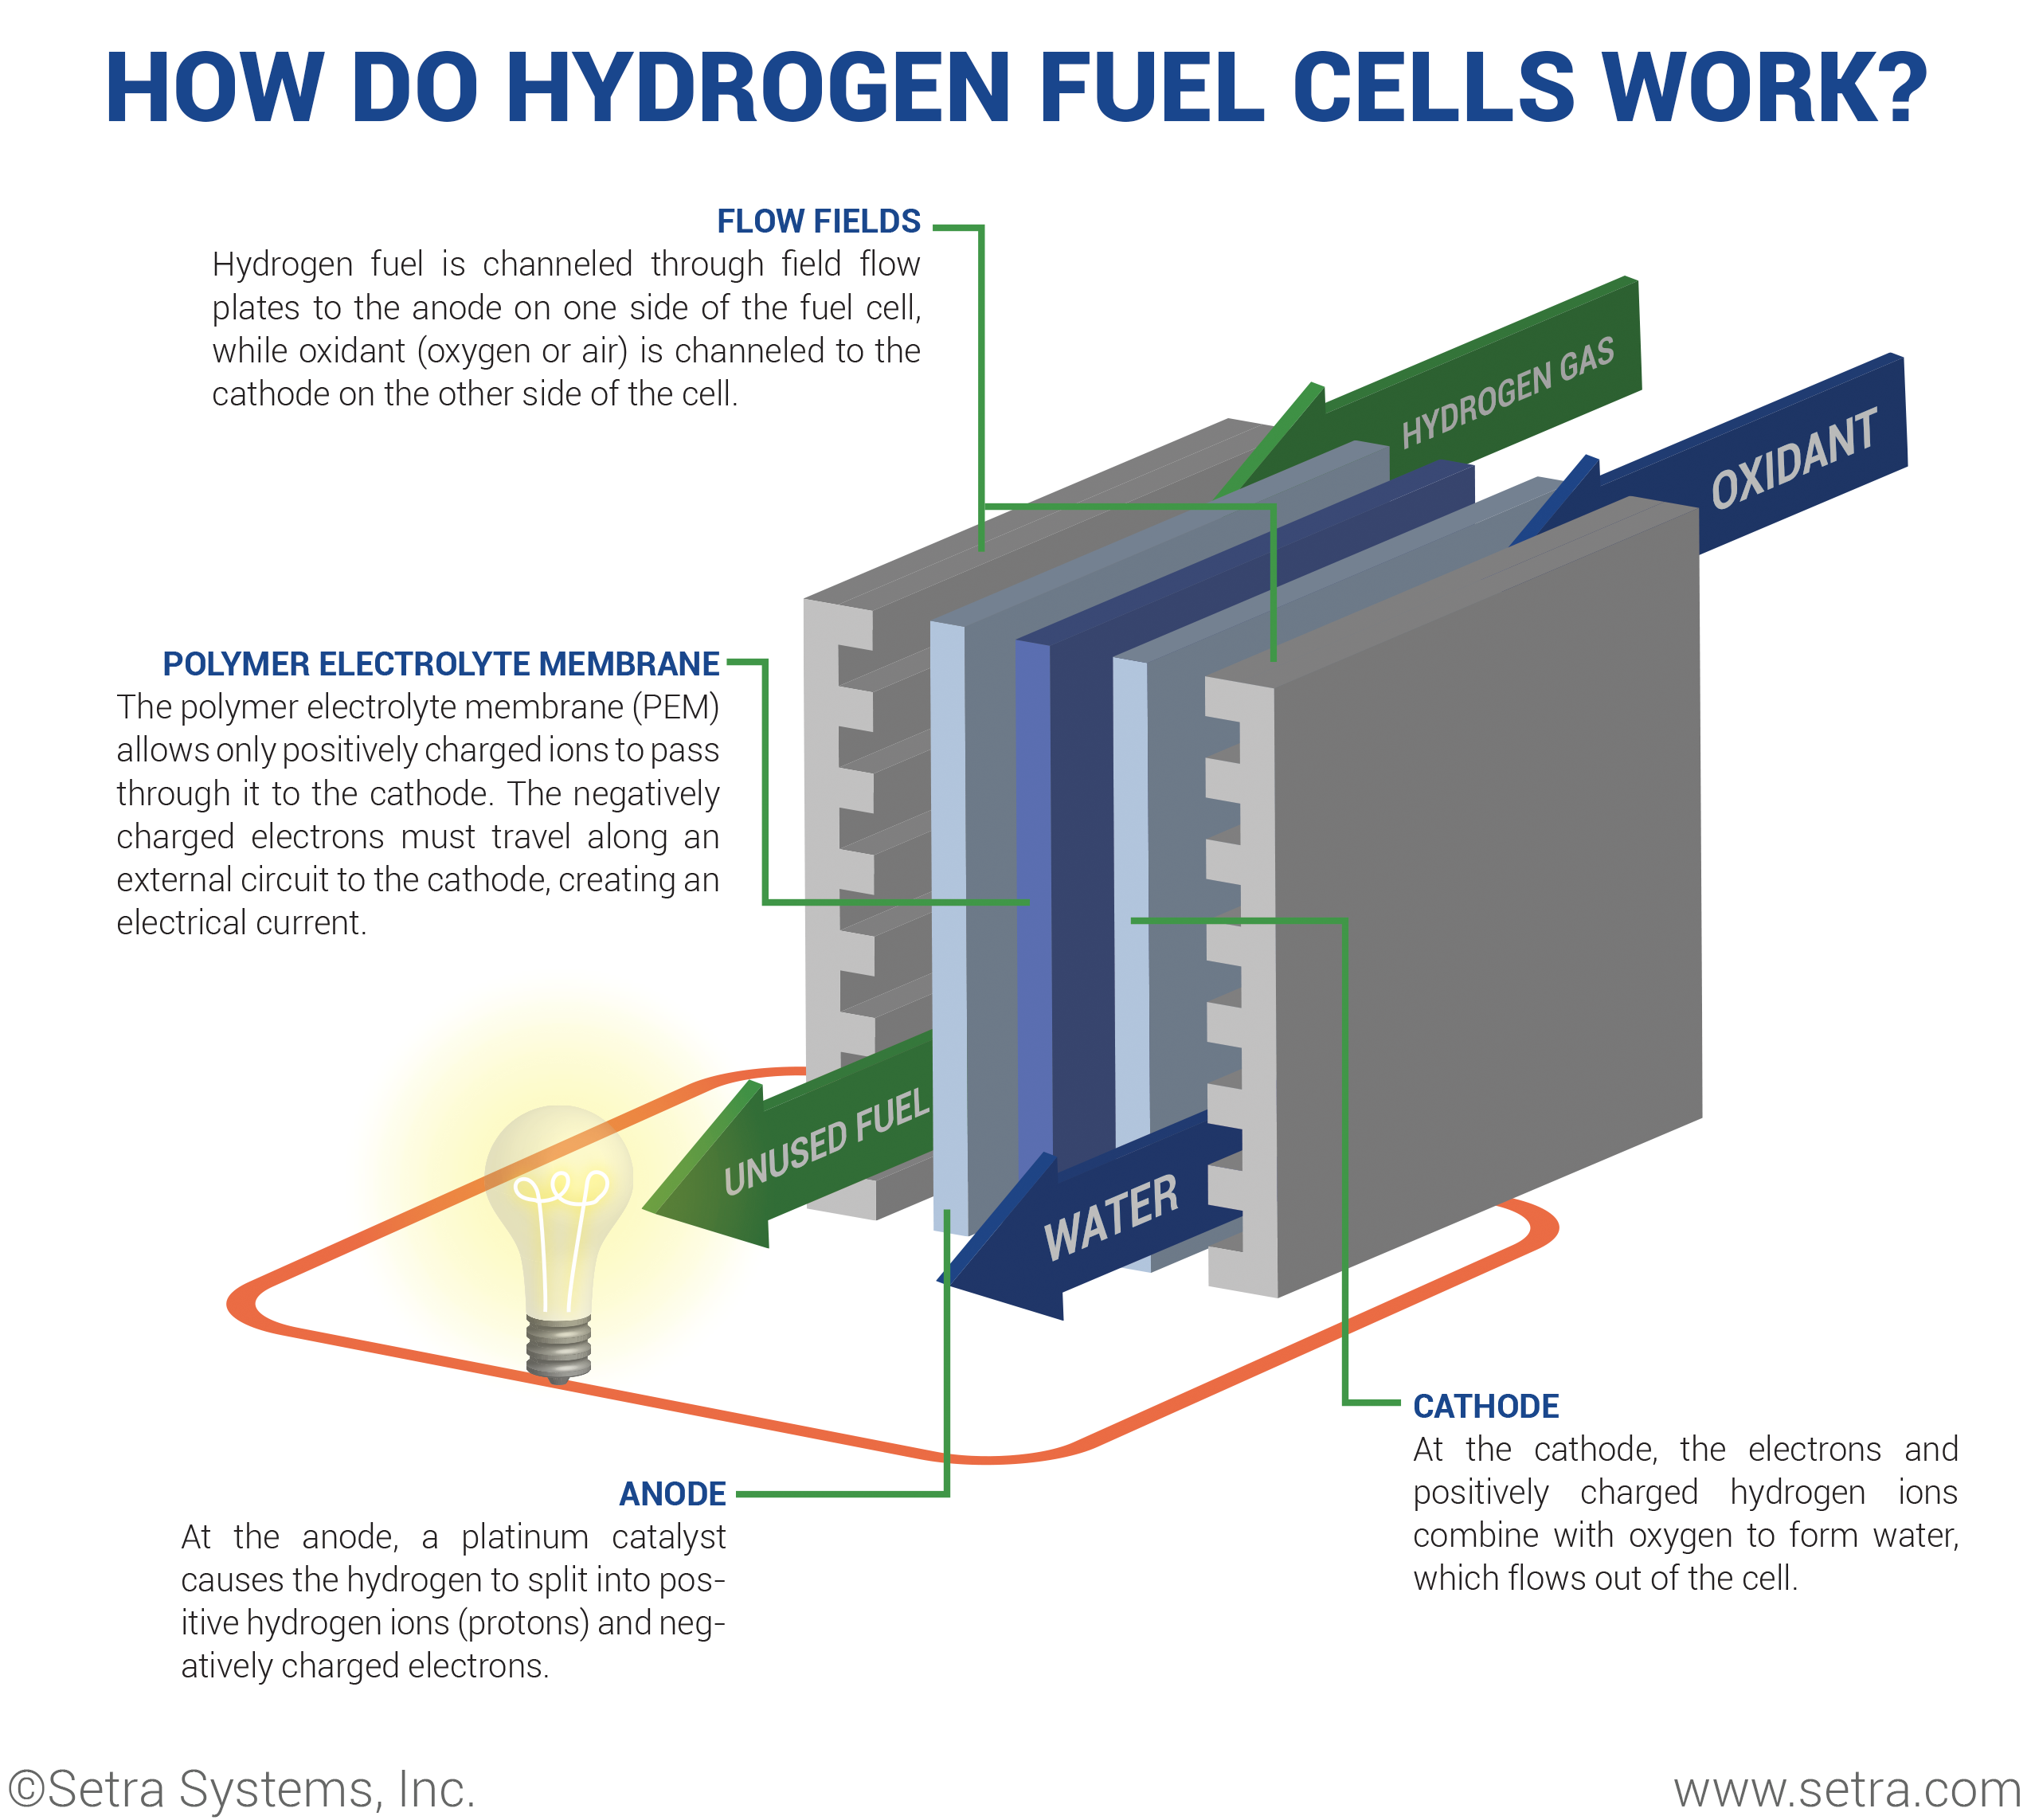 What Is A Hydrogen Fuel Cell And How Does It Work Working With Solve Elec To Test Electrical Circuits Do Cells